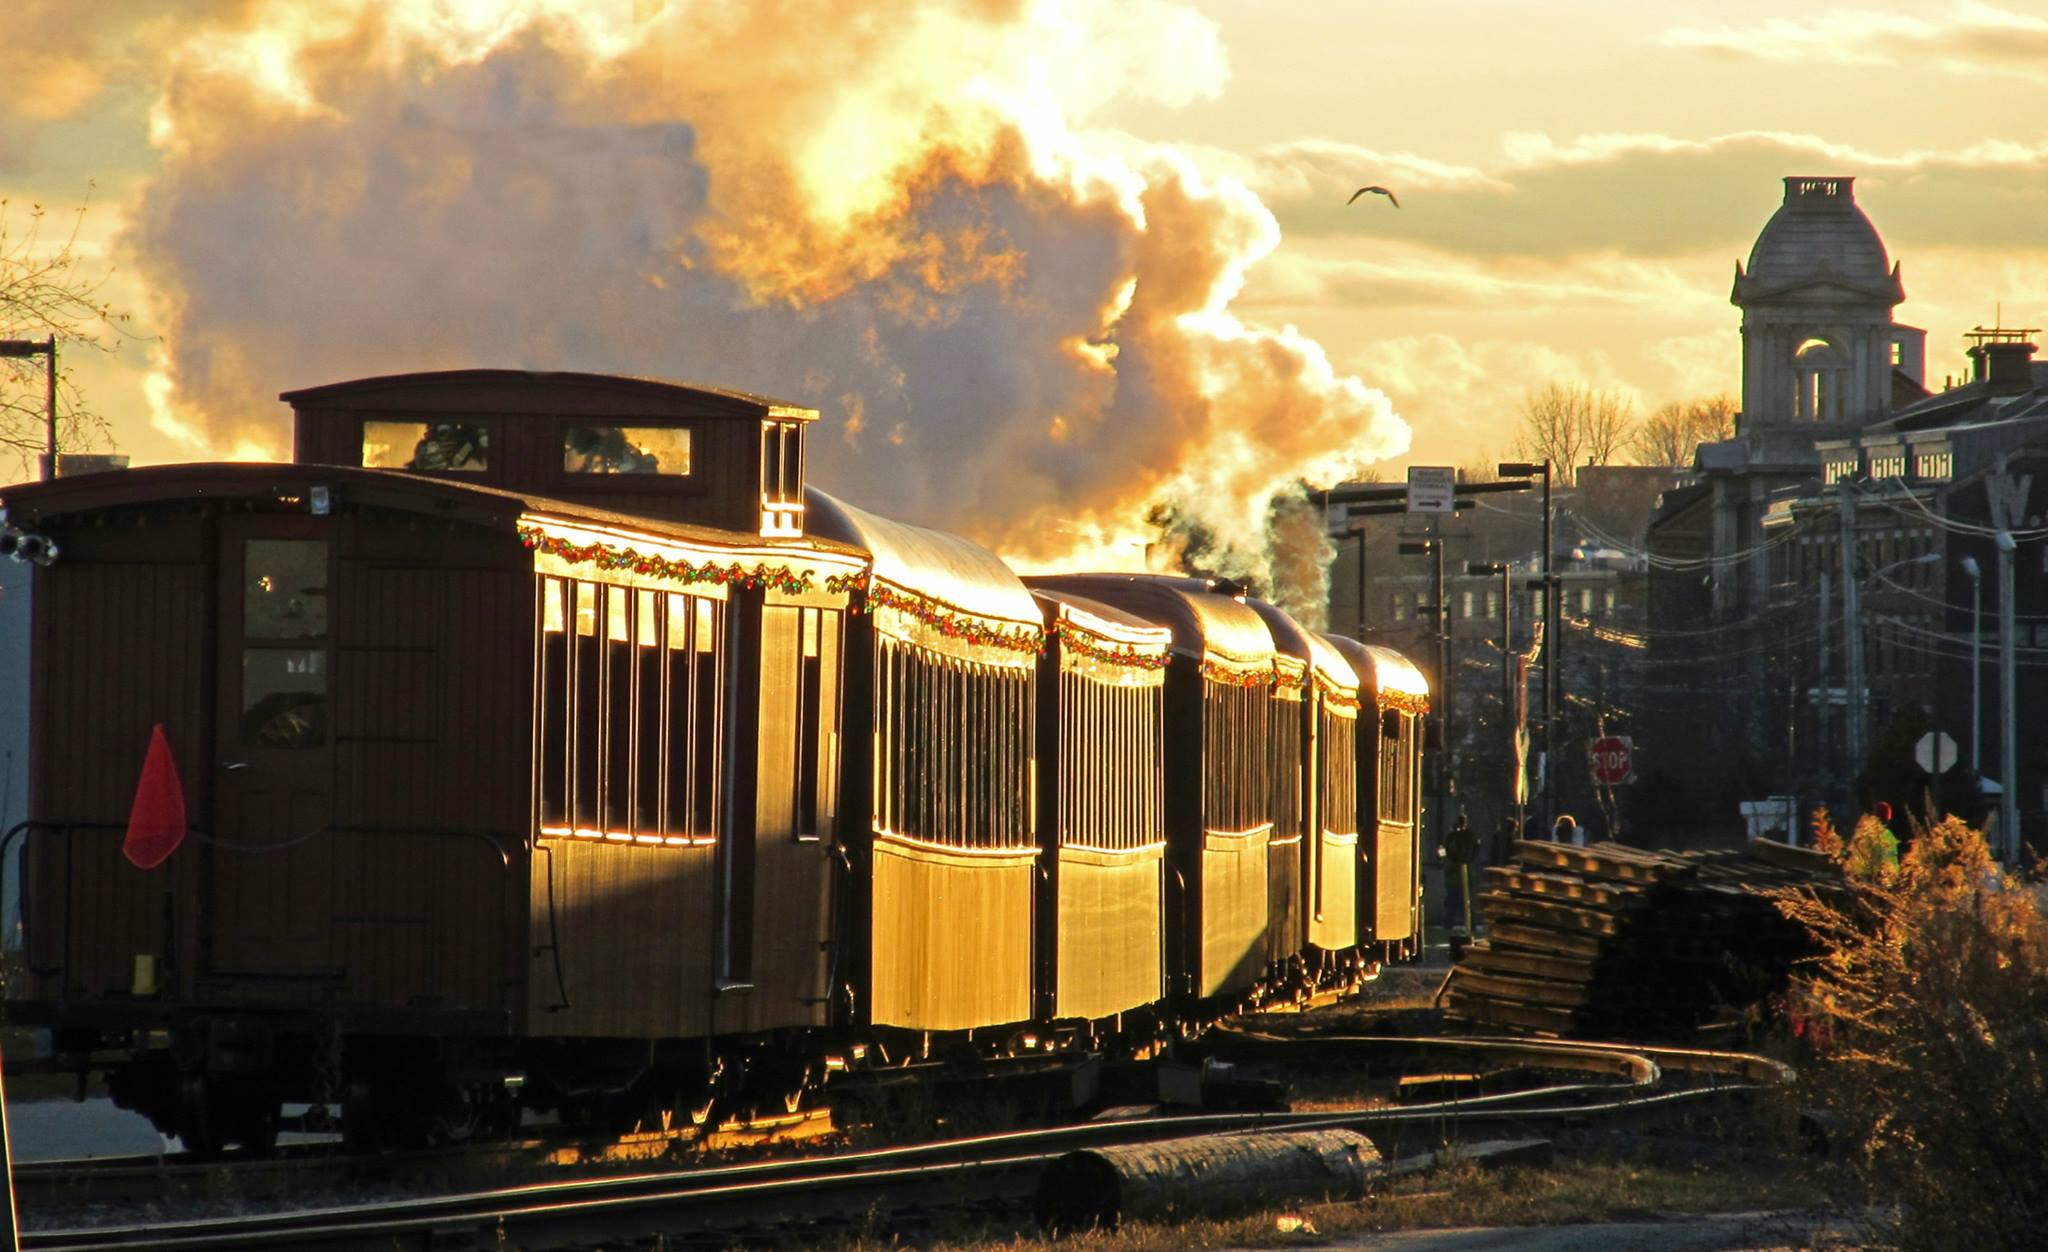 Travel Back To The 1870s By Visiting Maine's Very Own Narrow Gauge Railroad and Museum